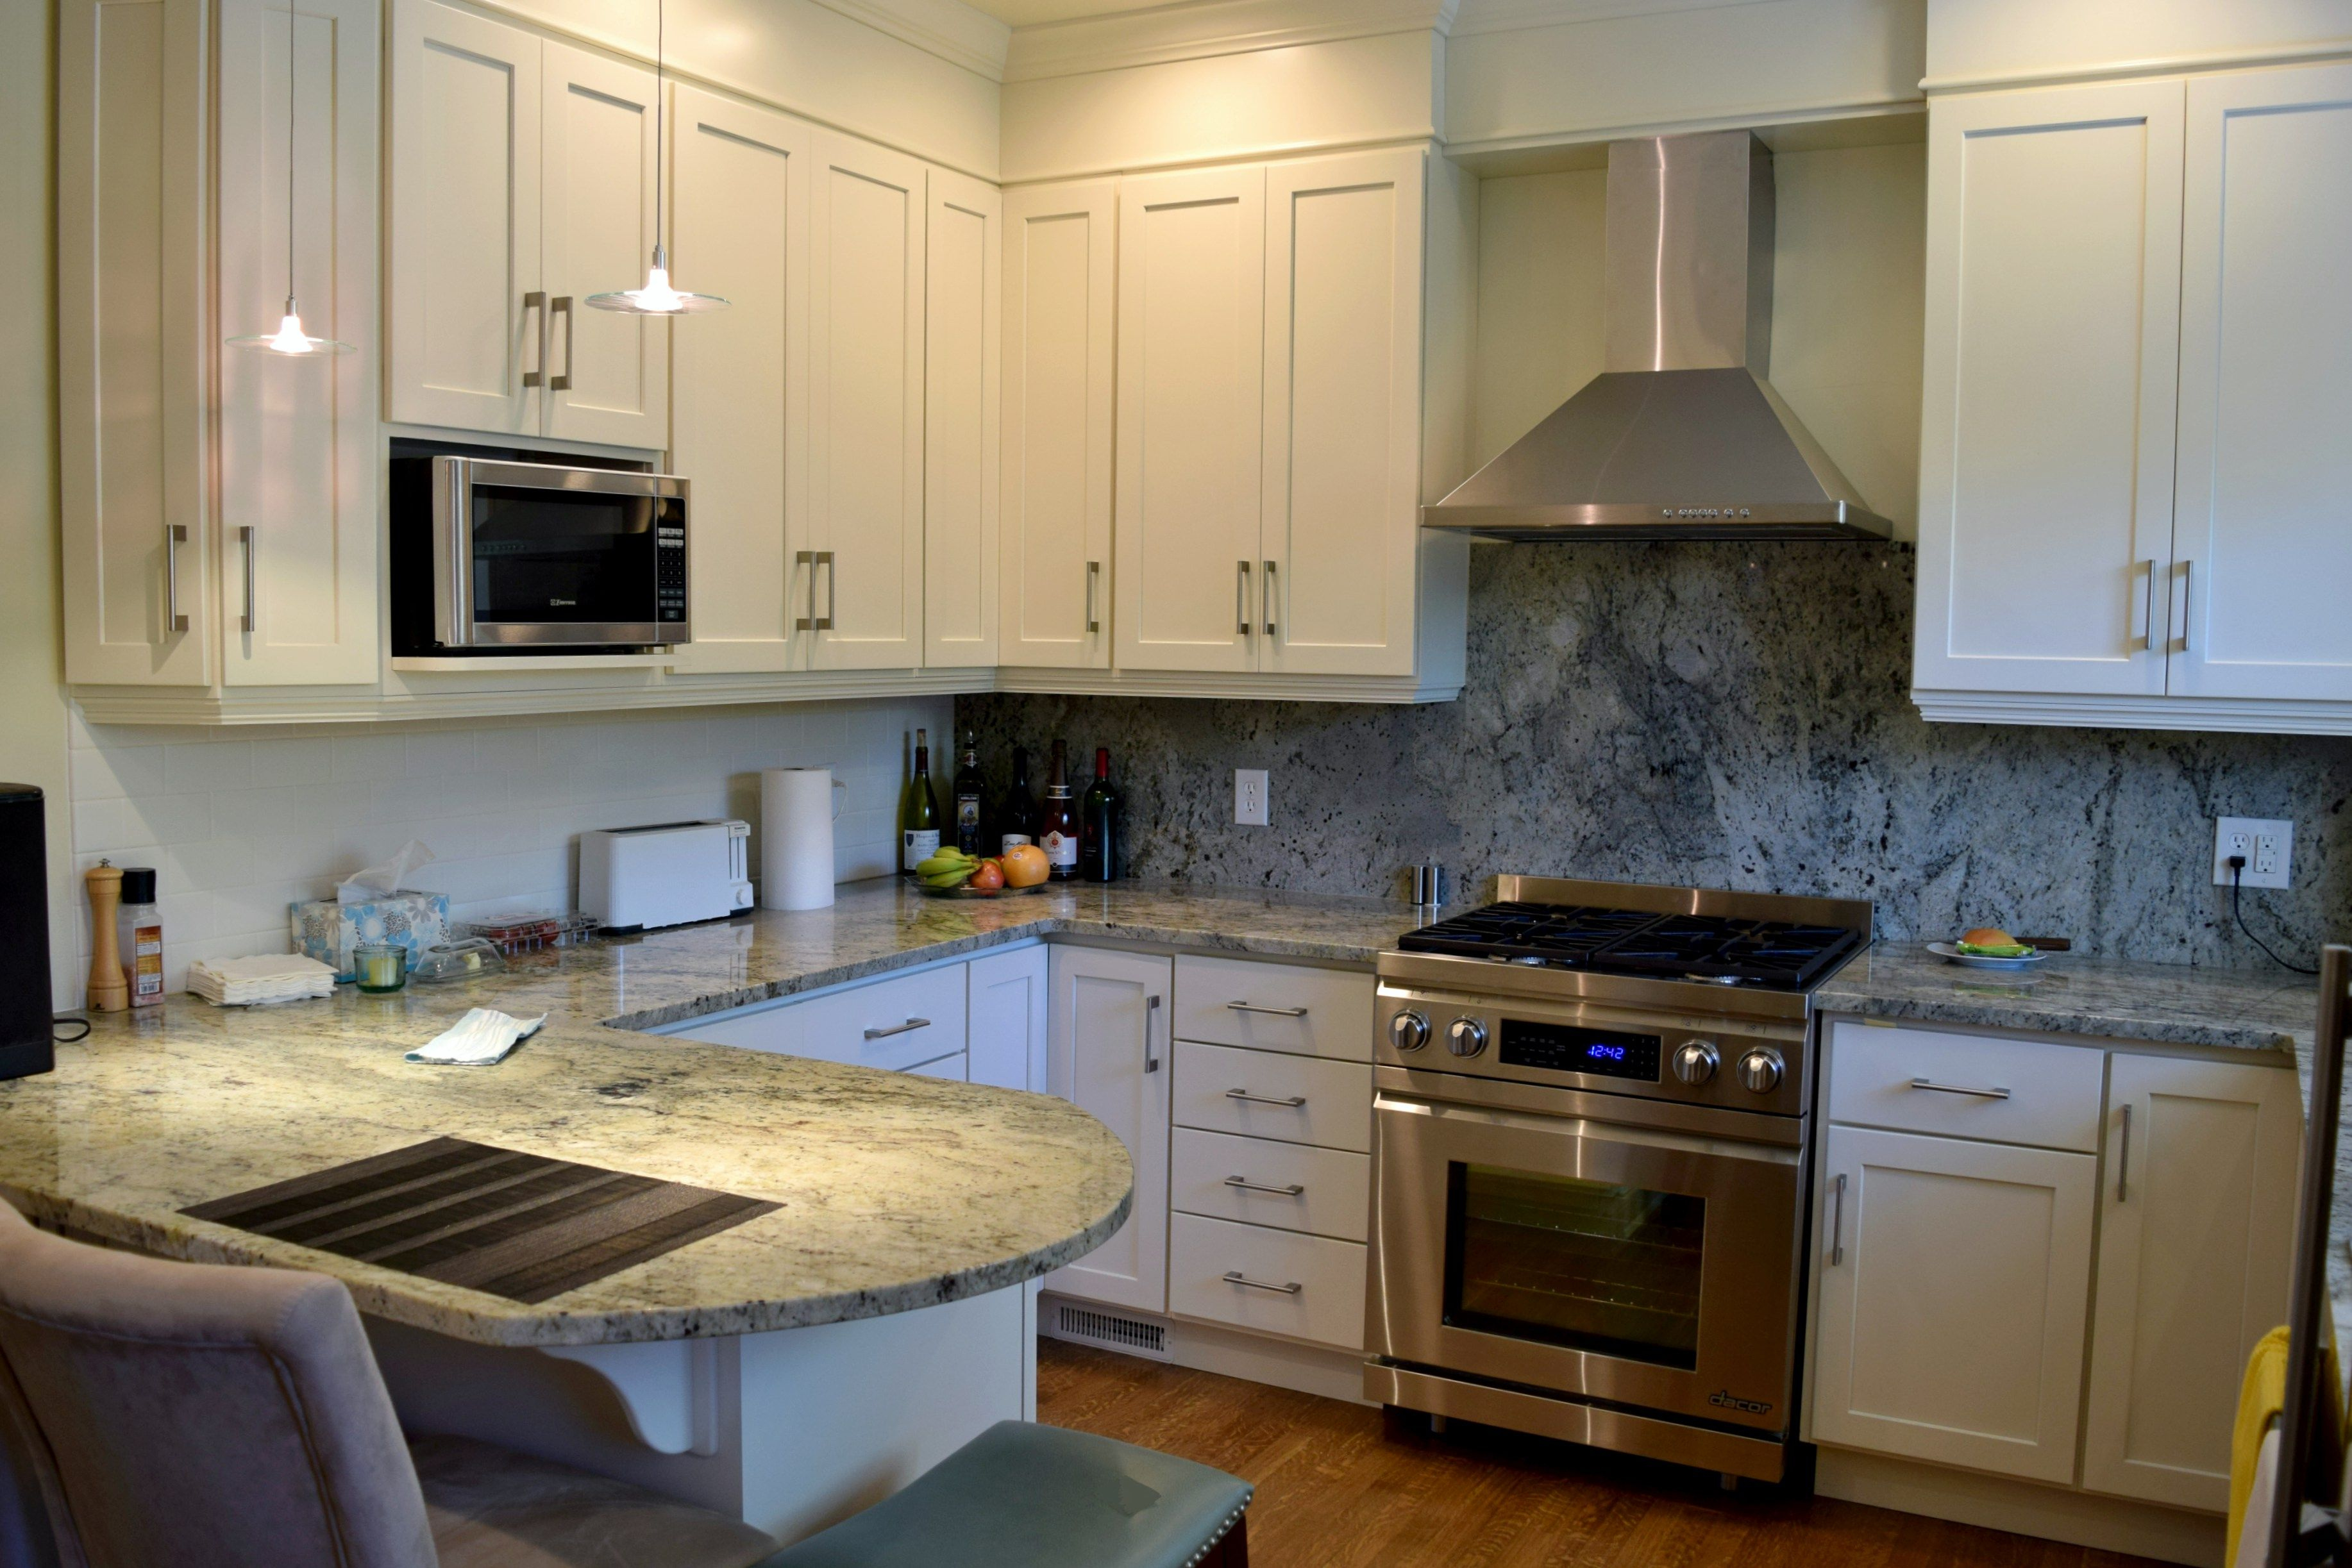 Remodel Works Bath Kitchen Bkc Kitchen And Bath Kitchen Remodel Cabinetry Current By